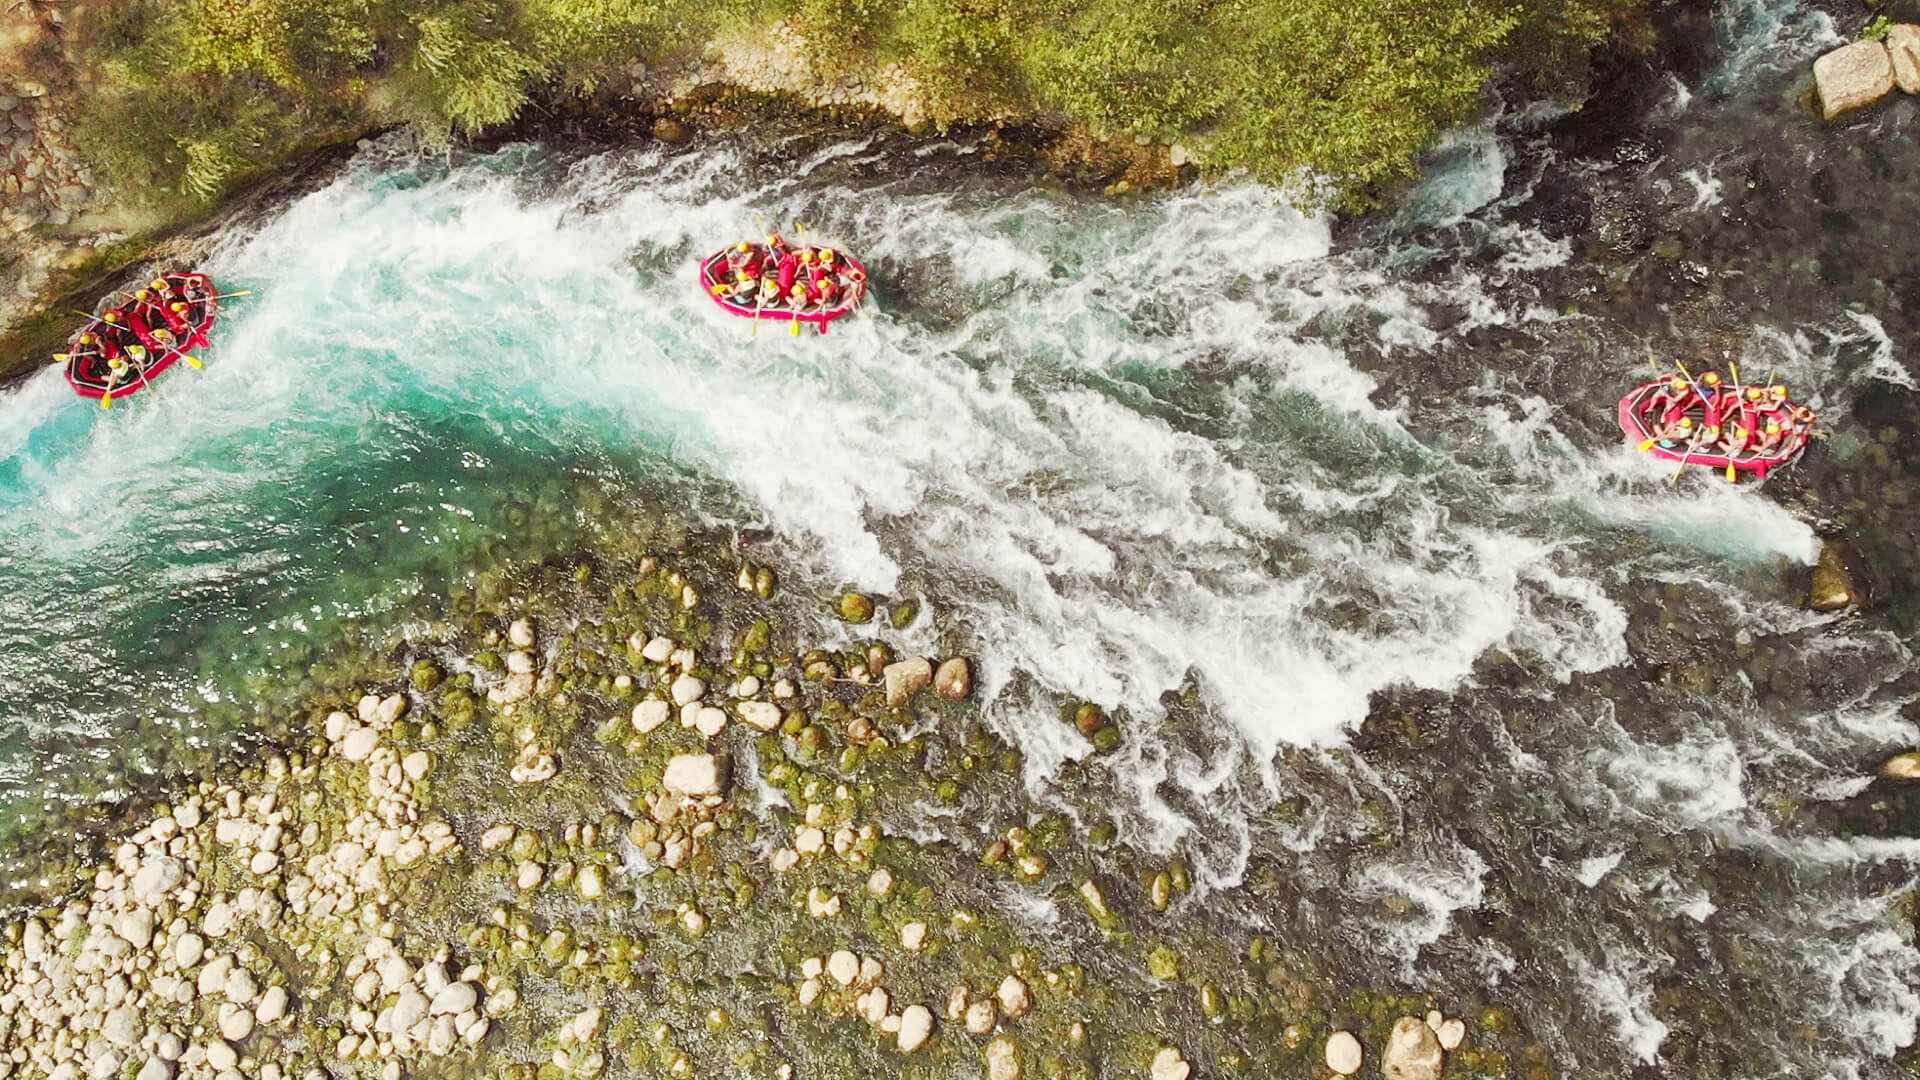 Whitewater rafters travel downstream